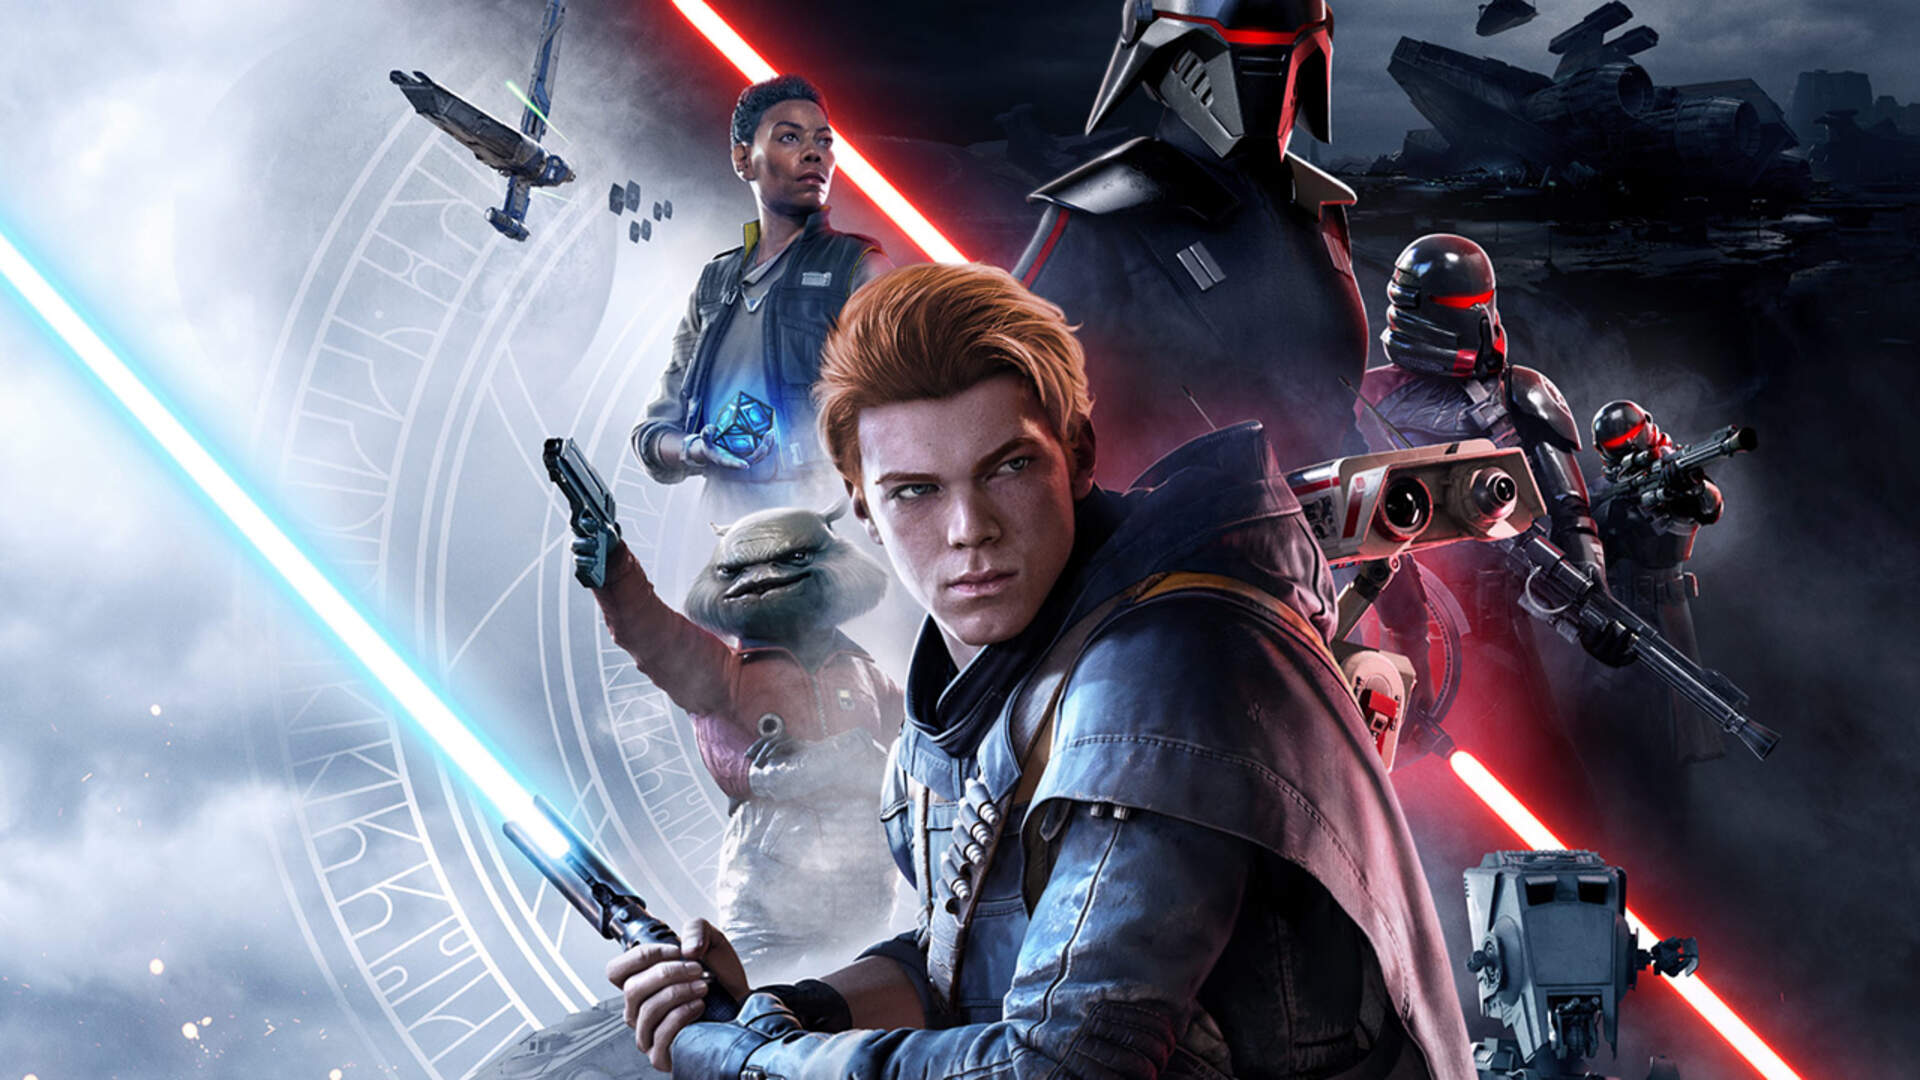 Star Wars Jedi: Fallen Order Review: A New Hope